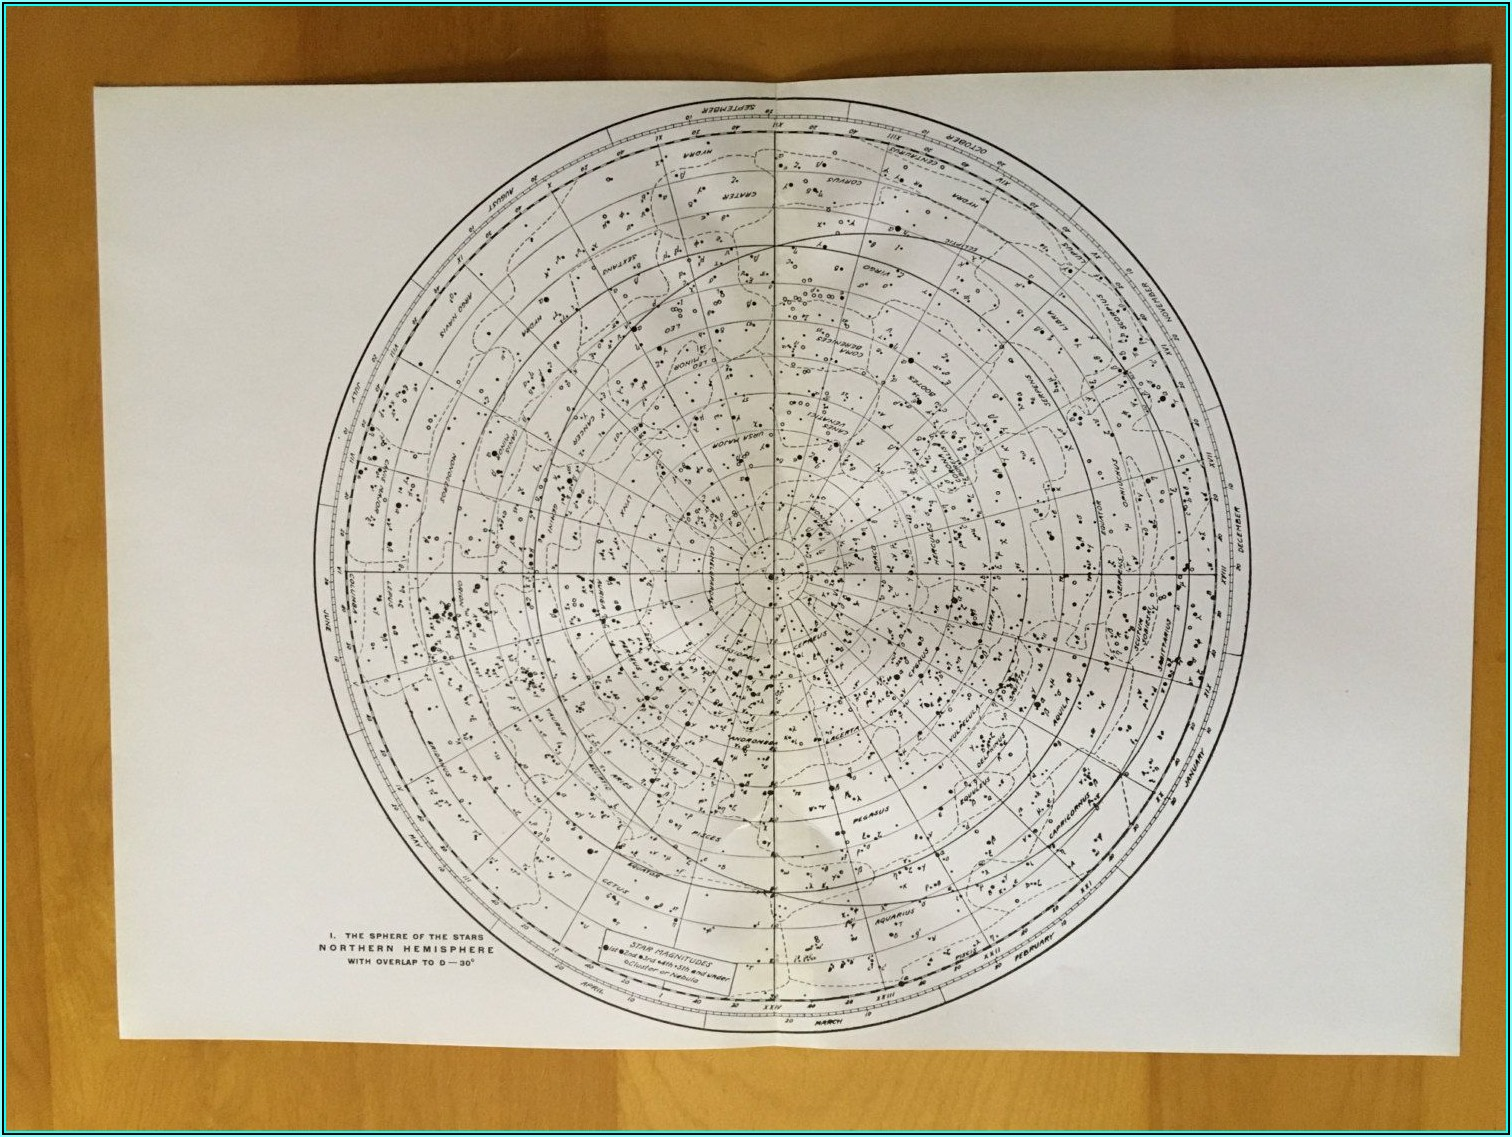 North Star Constellation Map